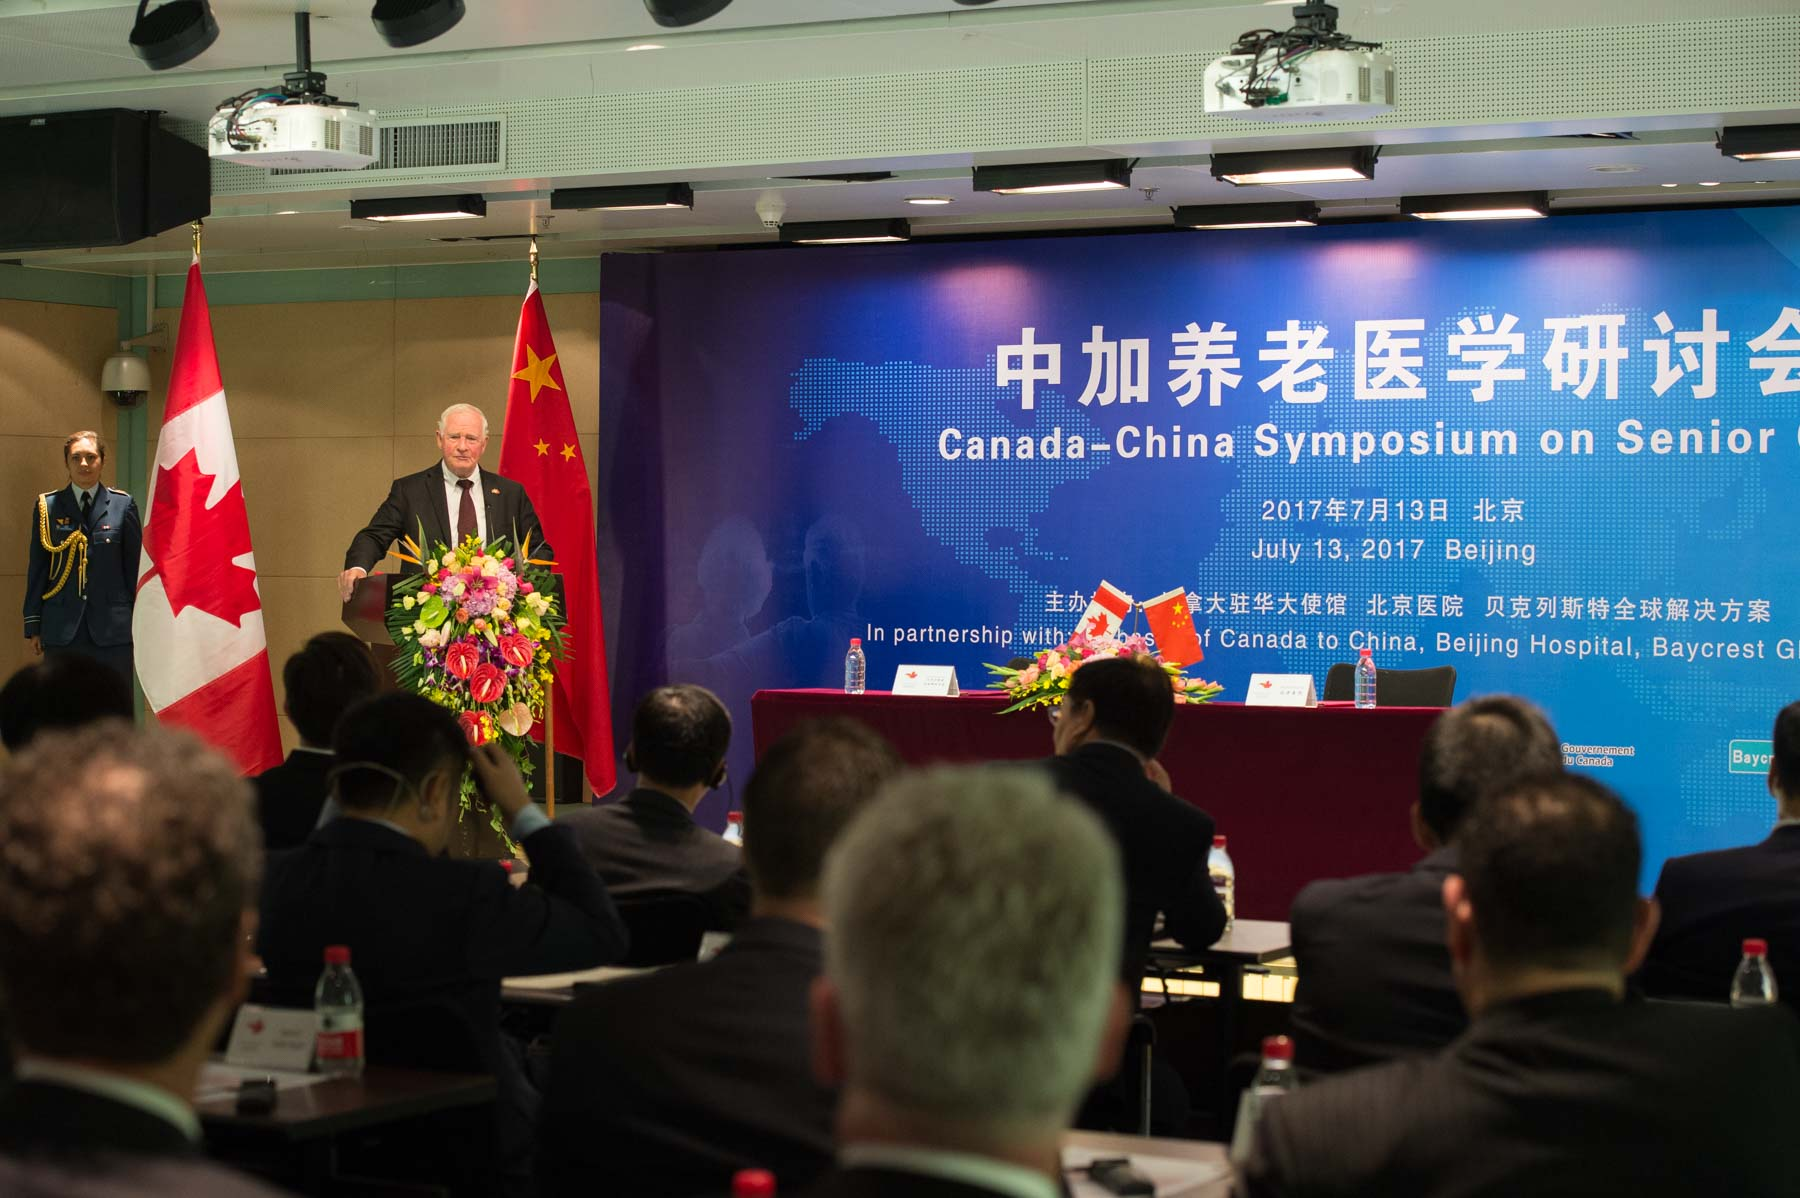 Following the meeting, the Governor General delivered opening remarks at a panel discussion on senior care at Beijing Hospital.